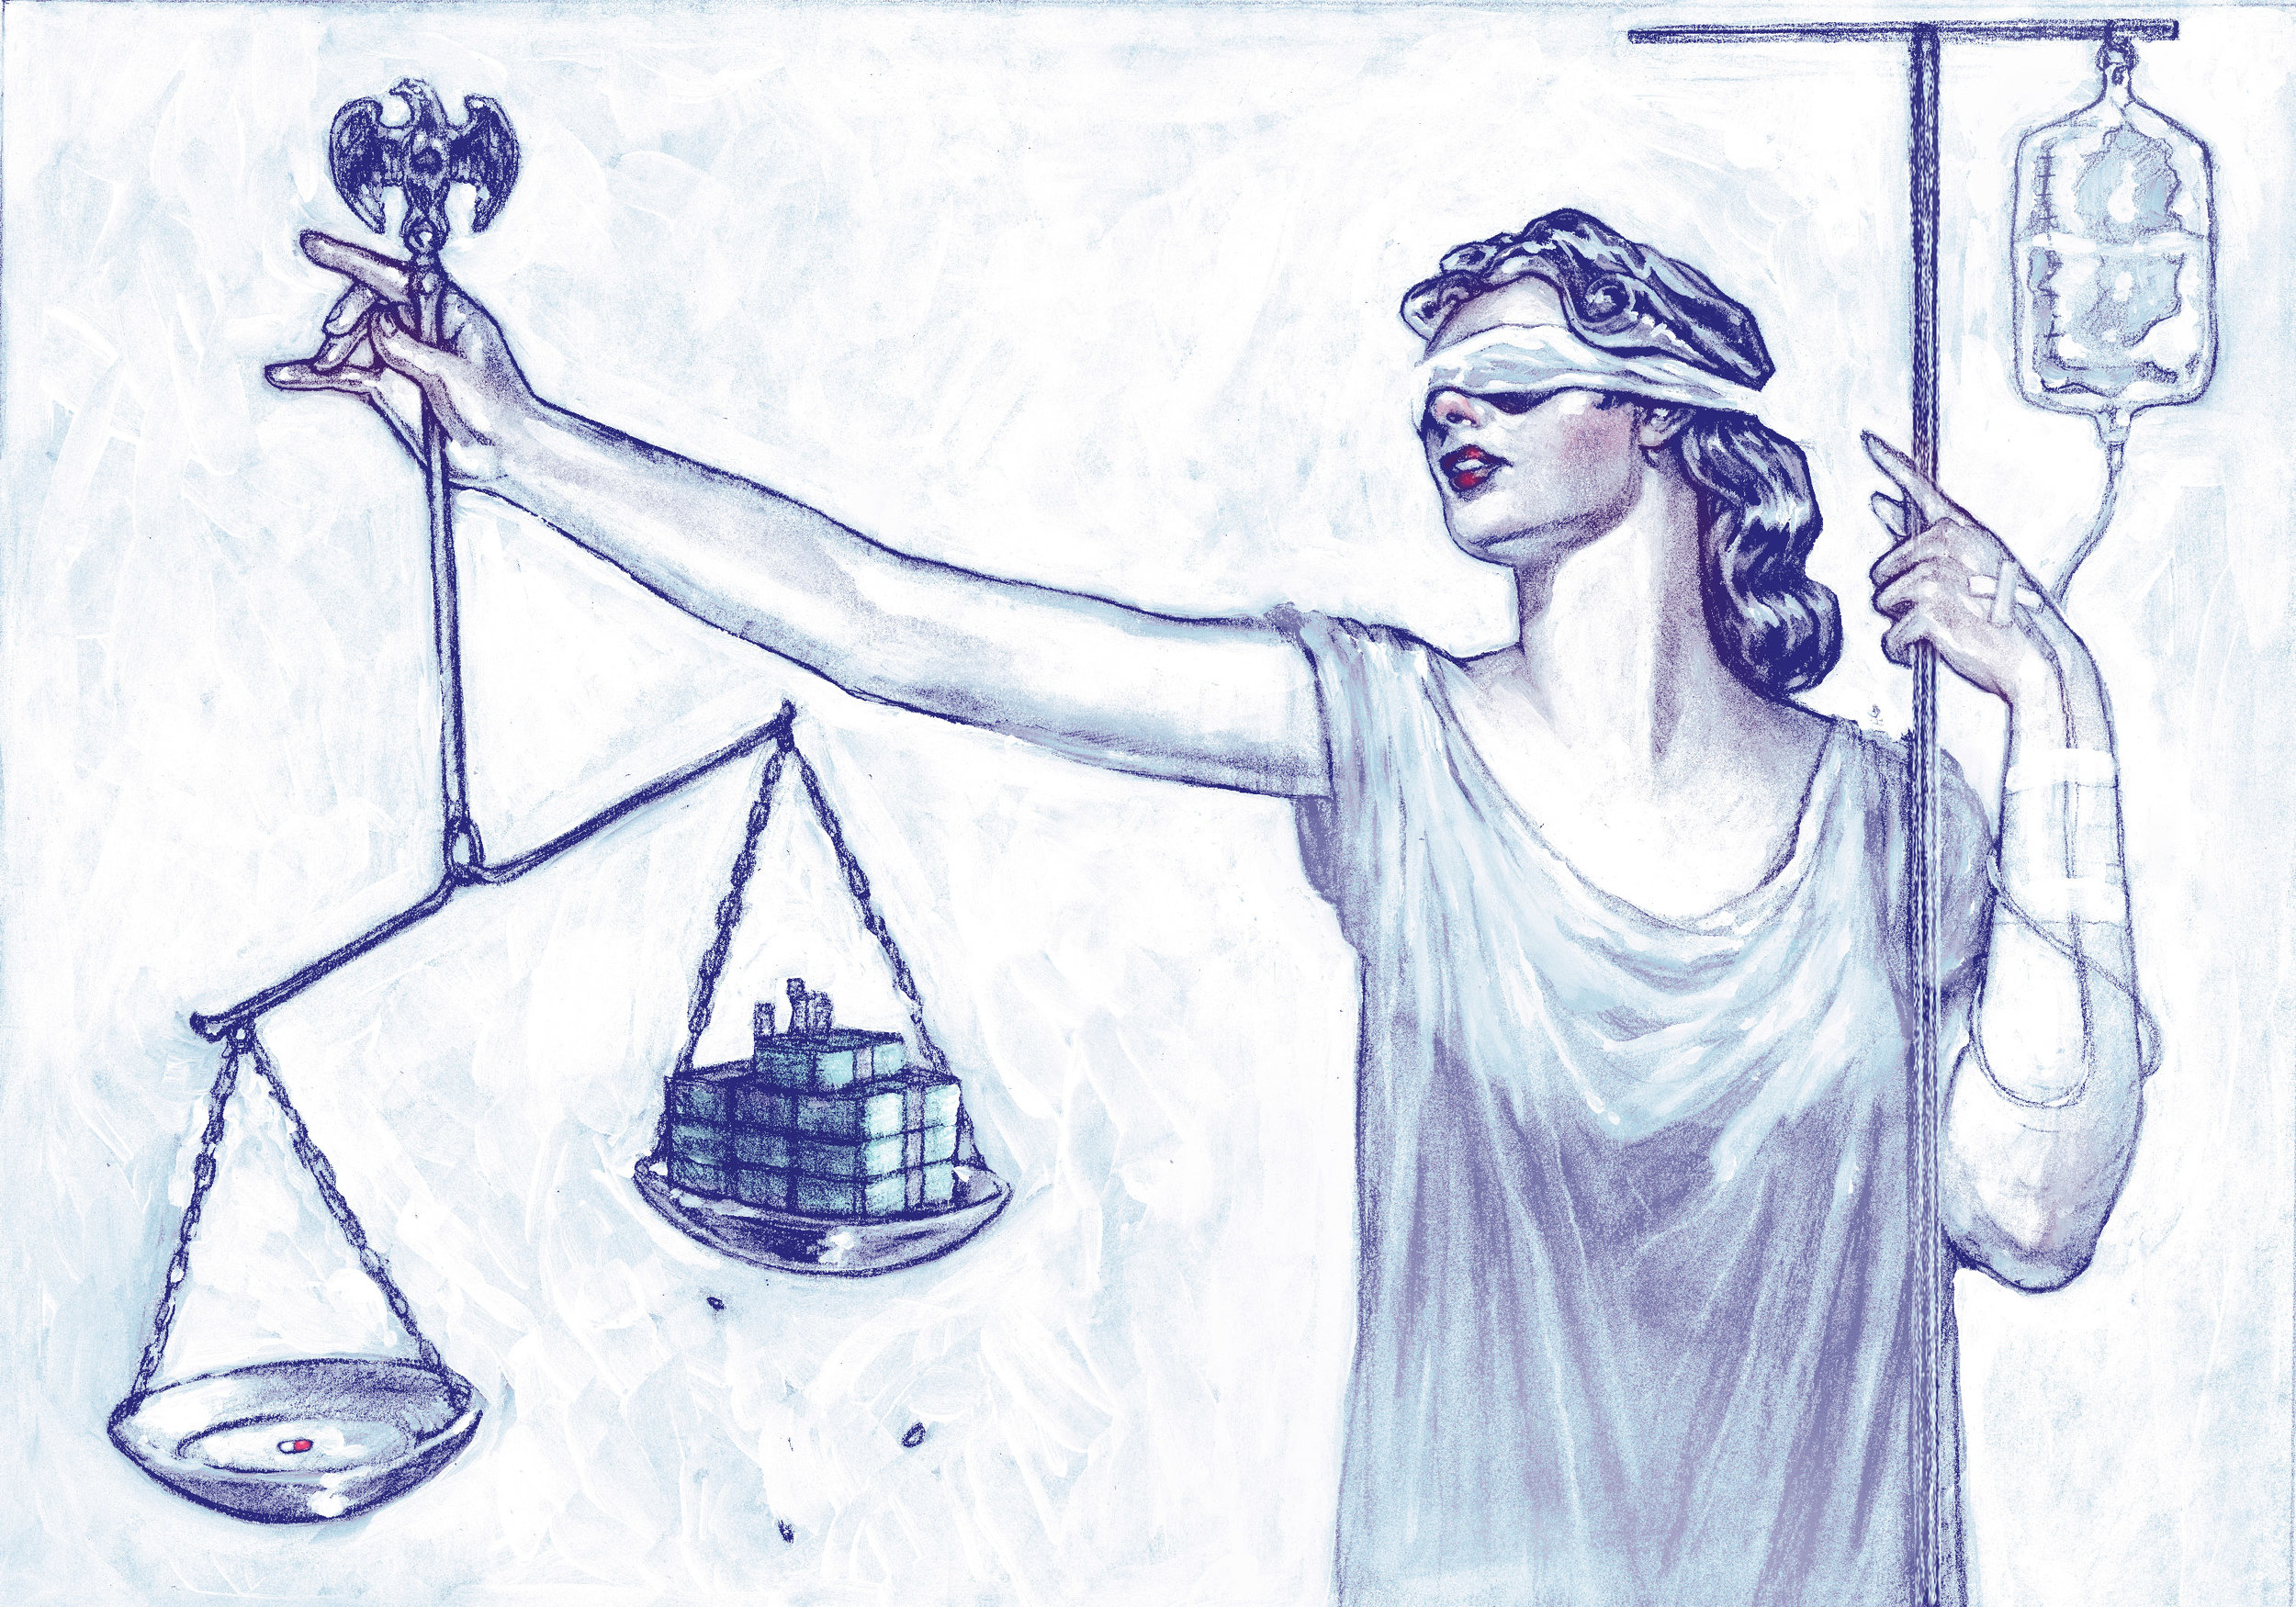 Blind Lady Justice